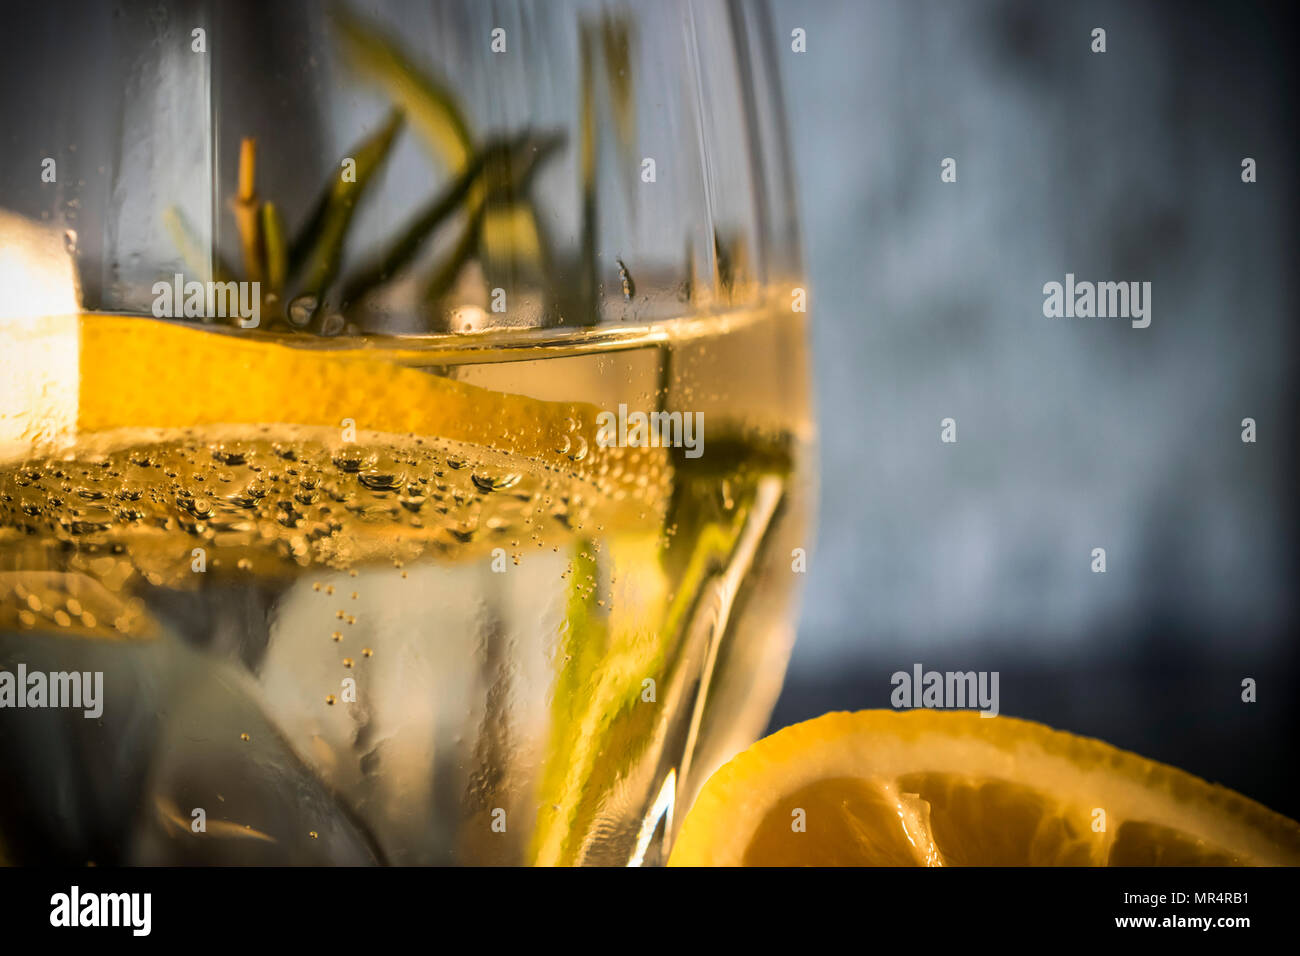 Close-up of a glass of tonic with lemon and rosemary - Stock Image